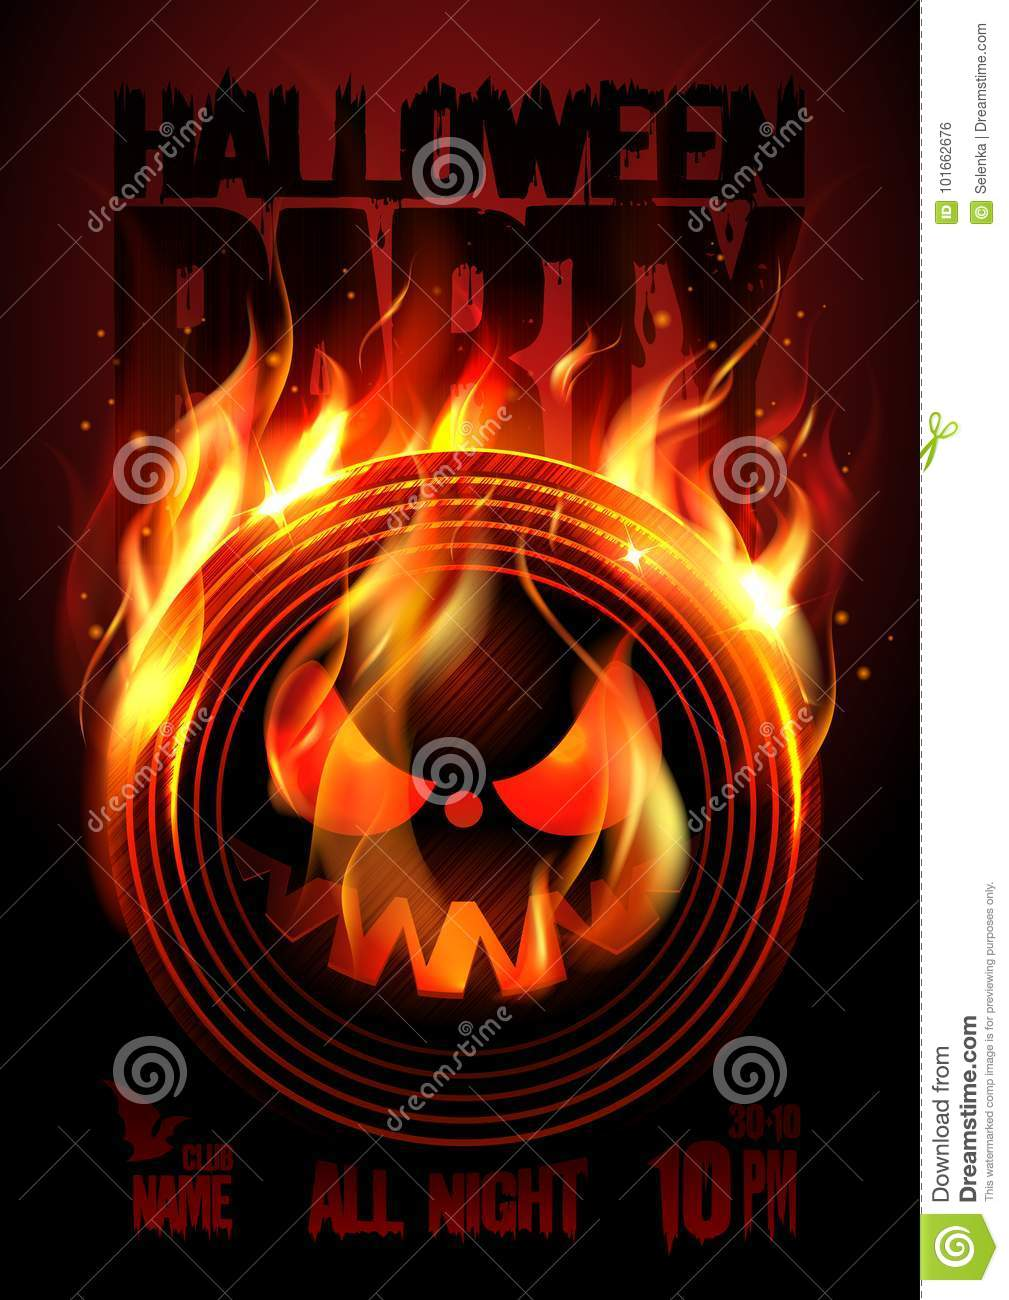 halloween party poster with vinyl stock vector - illustration of